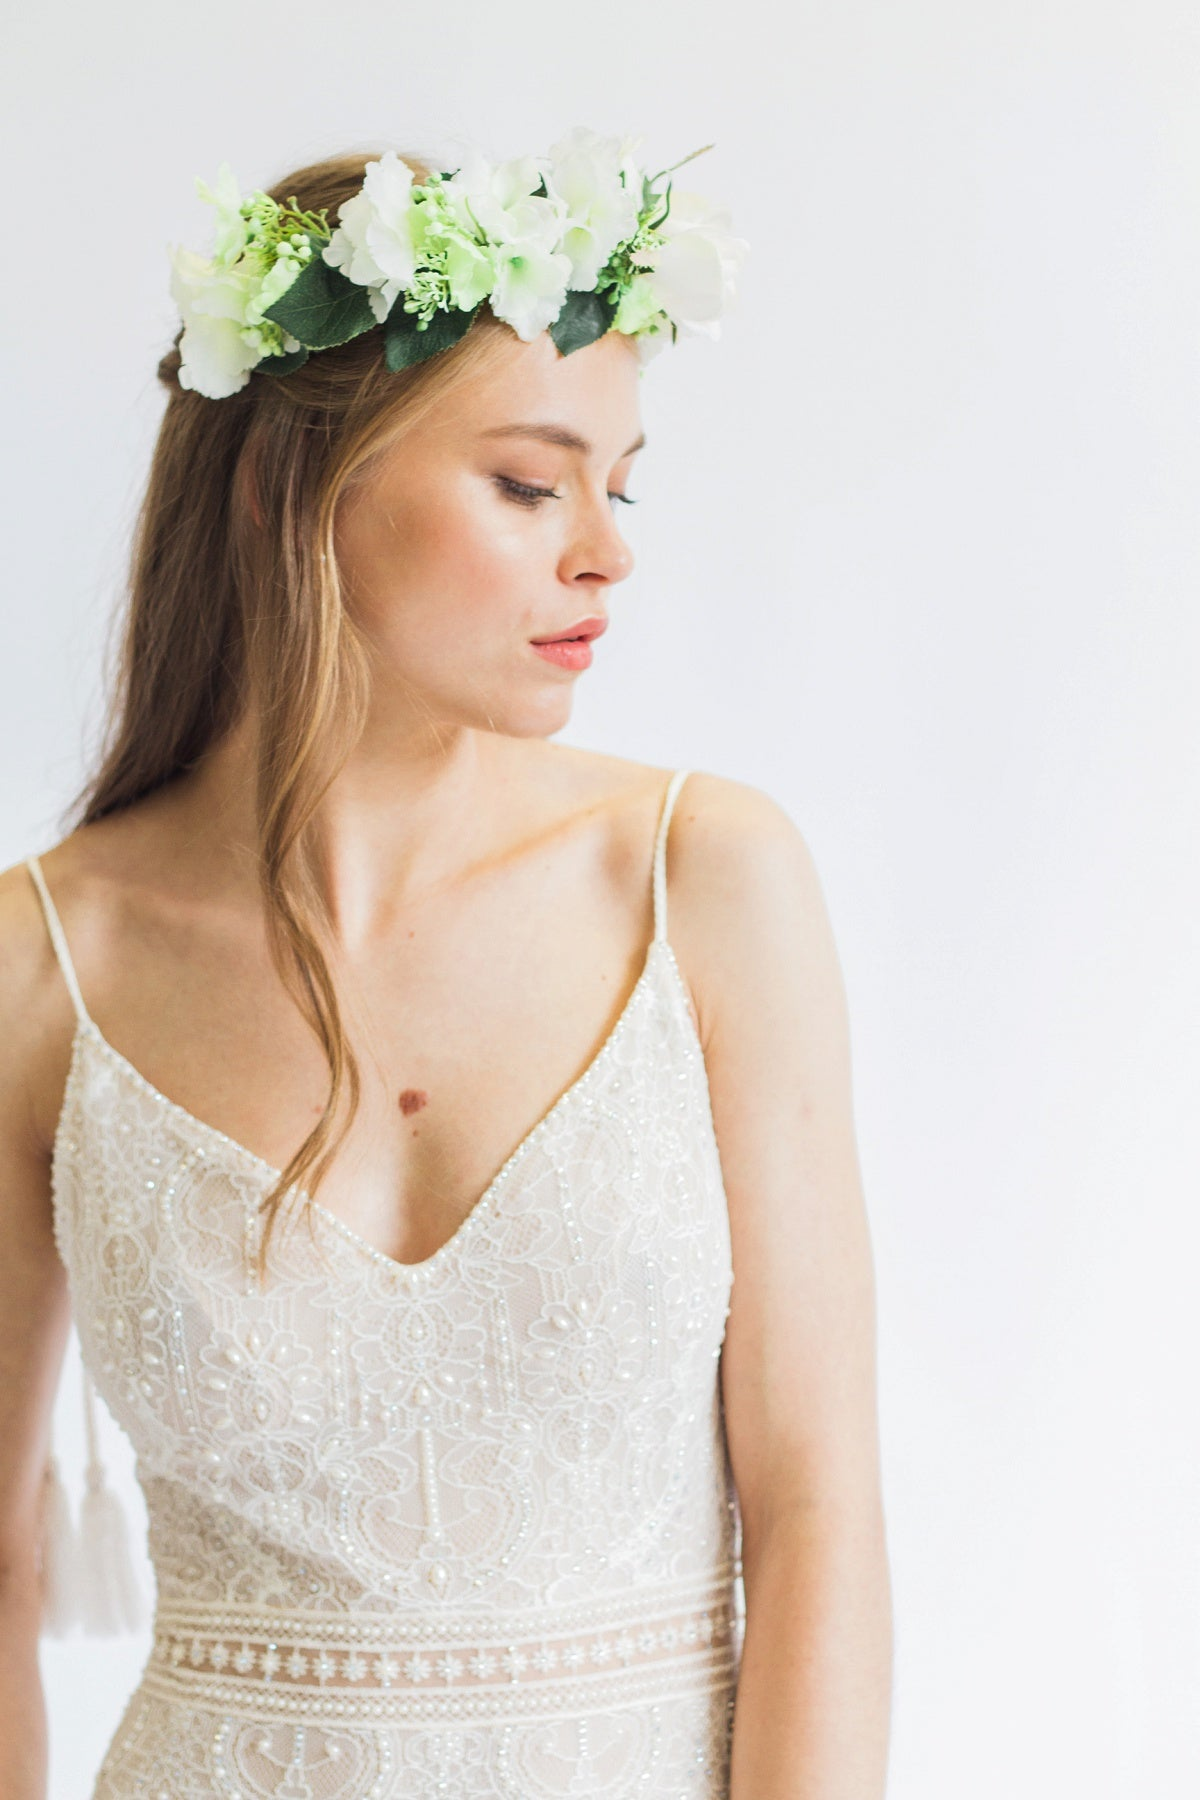 Ivory flower crown wedding flower crown uk wedding flower crown uk izmirmasajfo